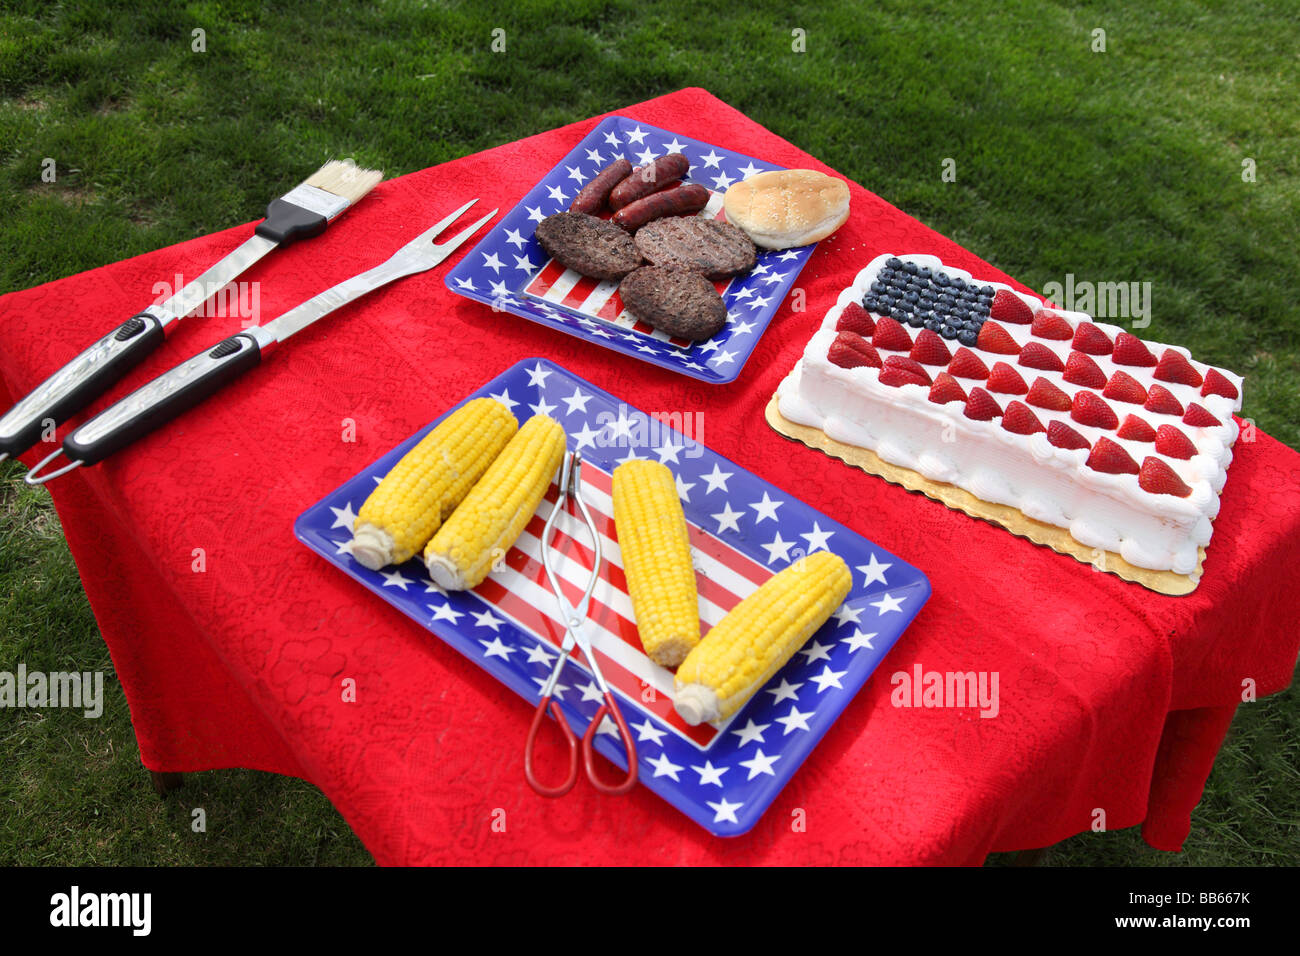 Table of food prepared for 4th of July barbecue - Stock Image